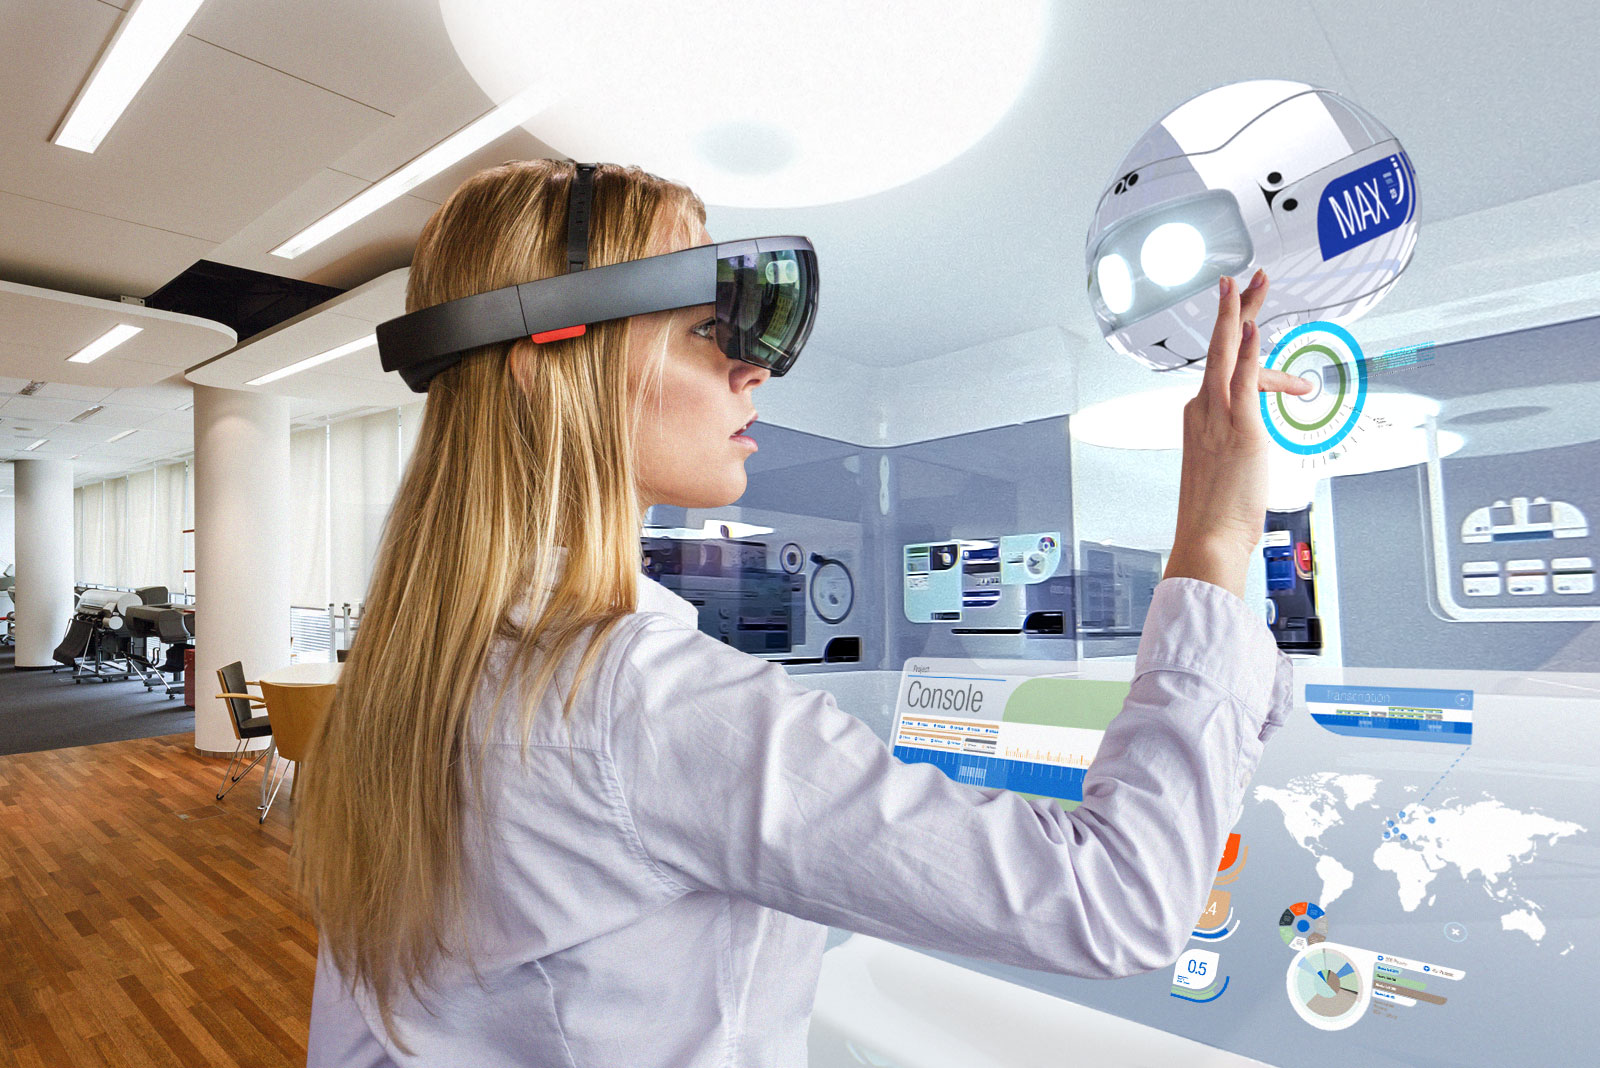 Virtual Reality, Augmented Reality, Zukunft der Arbeit, Transformation